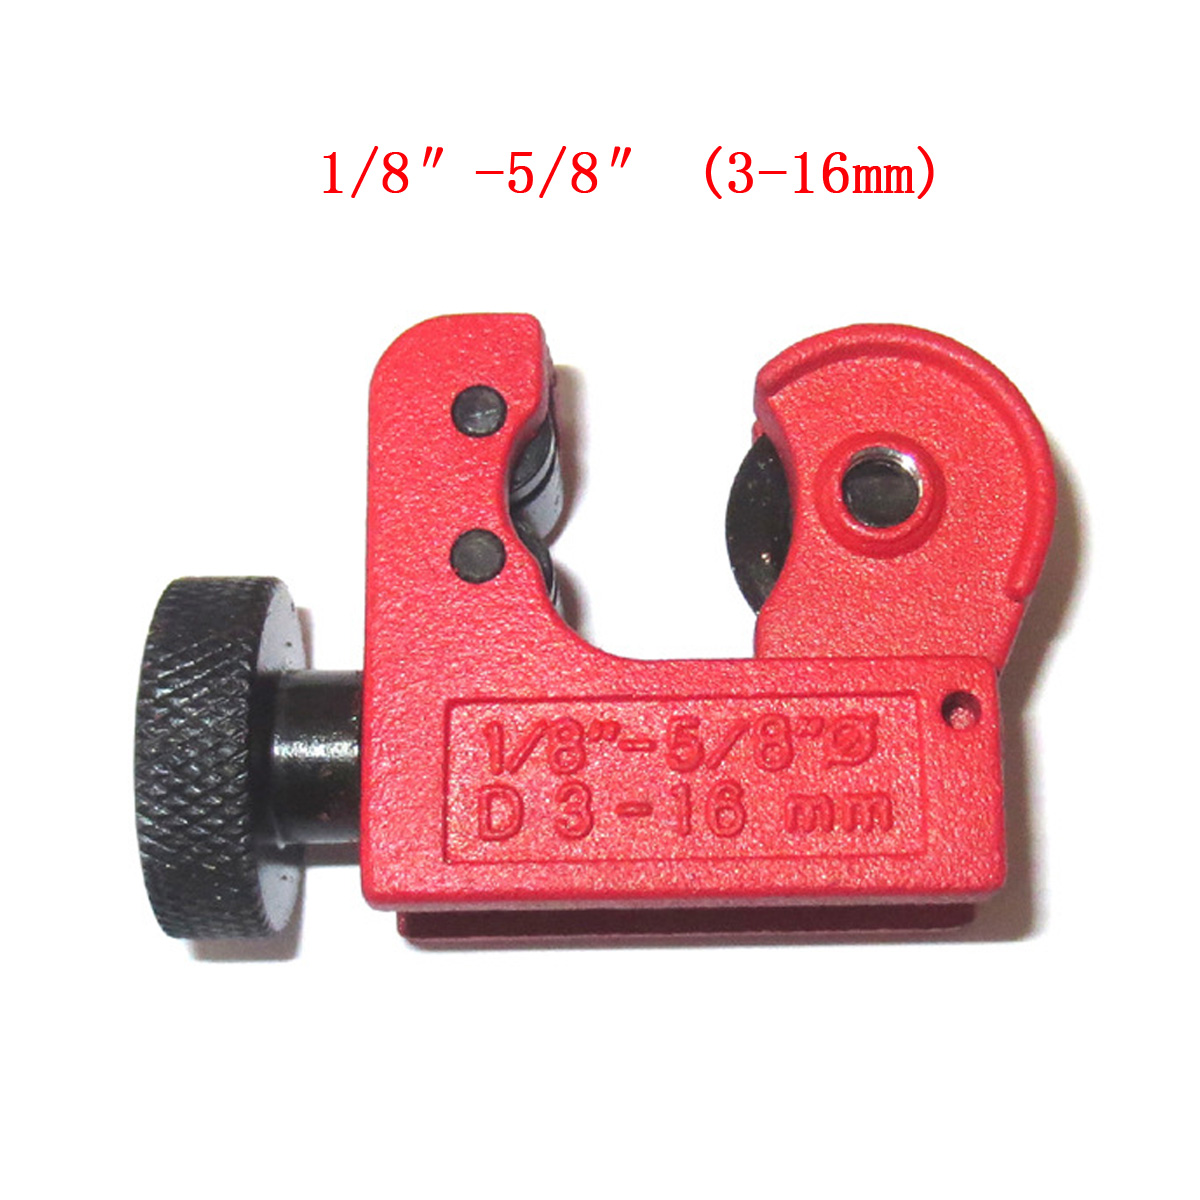 Mini Tube Pipe Cutter Zinc Alloy 1/8inch-5/8inch 3-16mm Cutting Cut Range